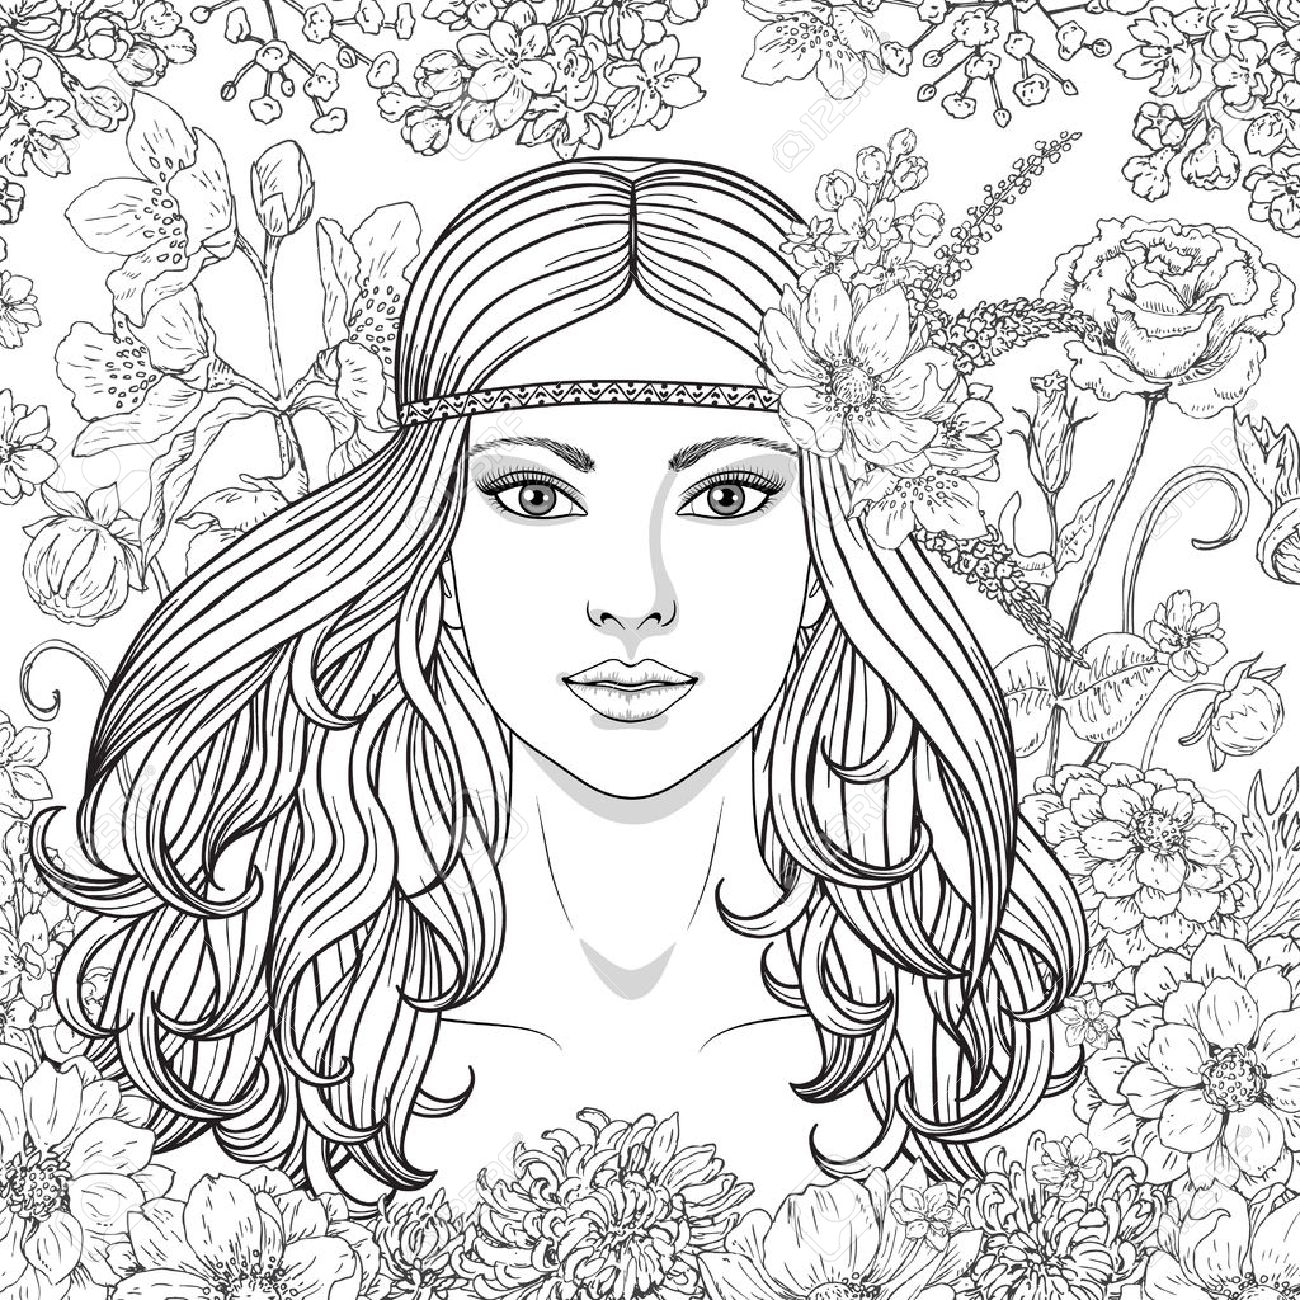 1300x1300 Hand Drawn Girl With Flowers. Doodle Floral Frame. Black